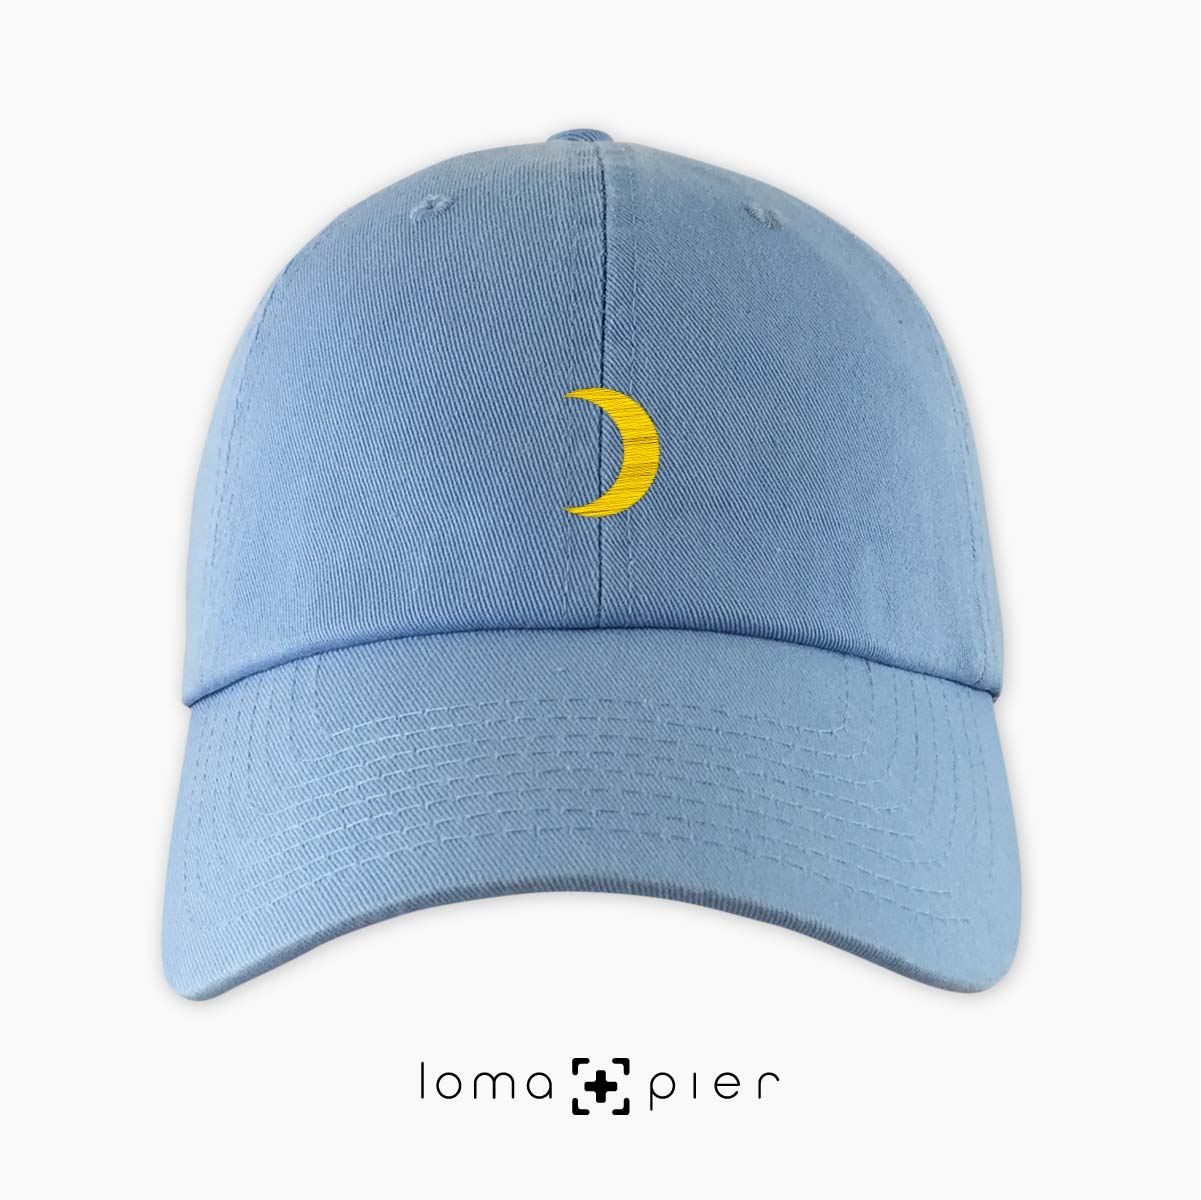 f8dccacb7bdb5 MOON icon dad hat by loma+pier hat store